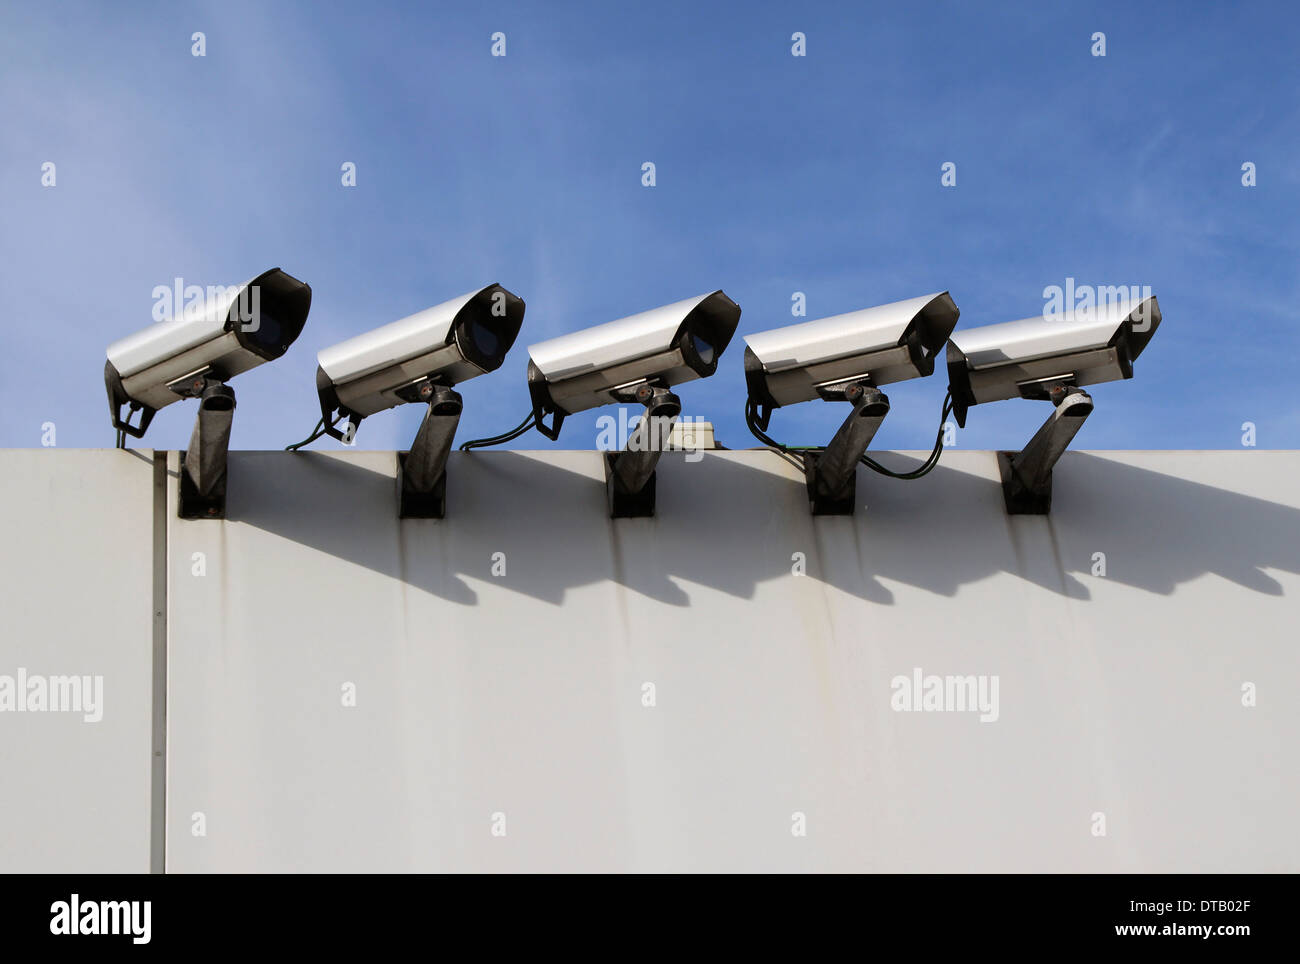 Closed circuit television on wall - Stock Image